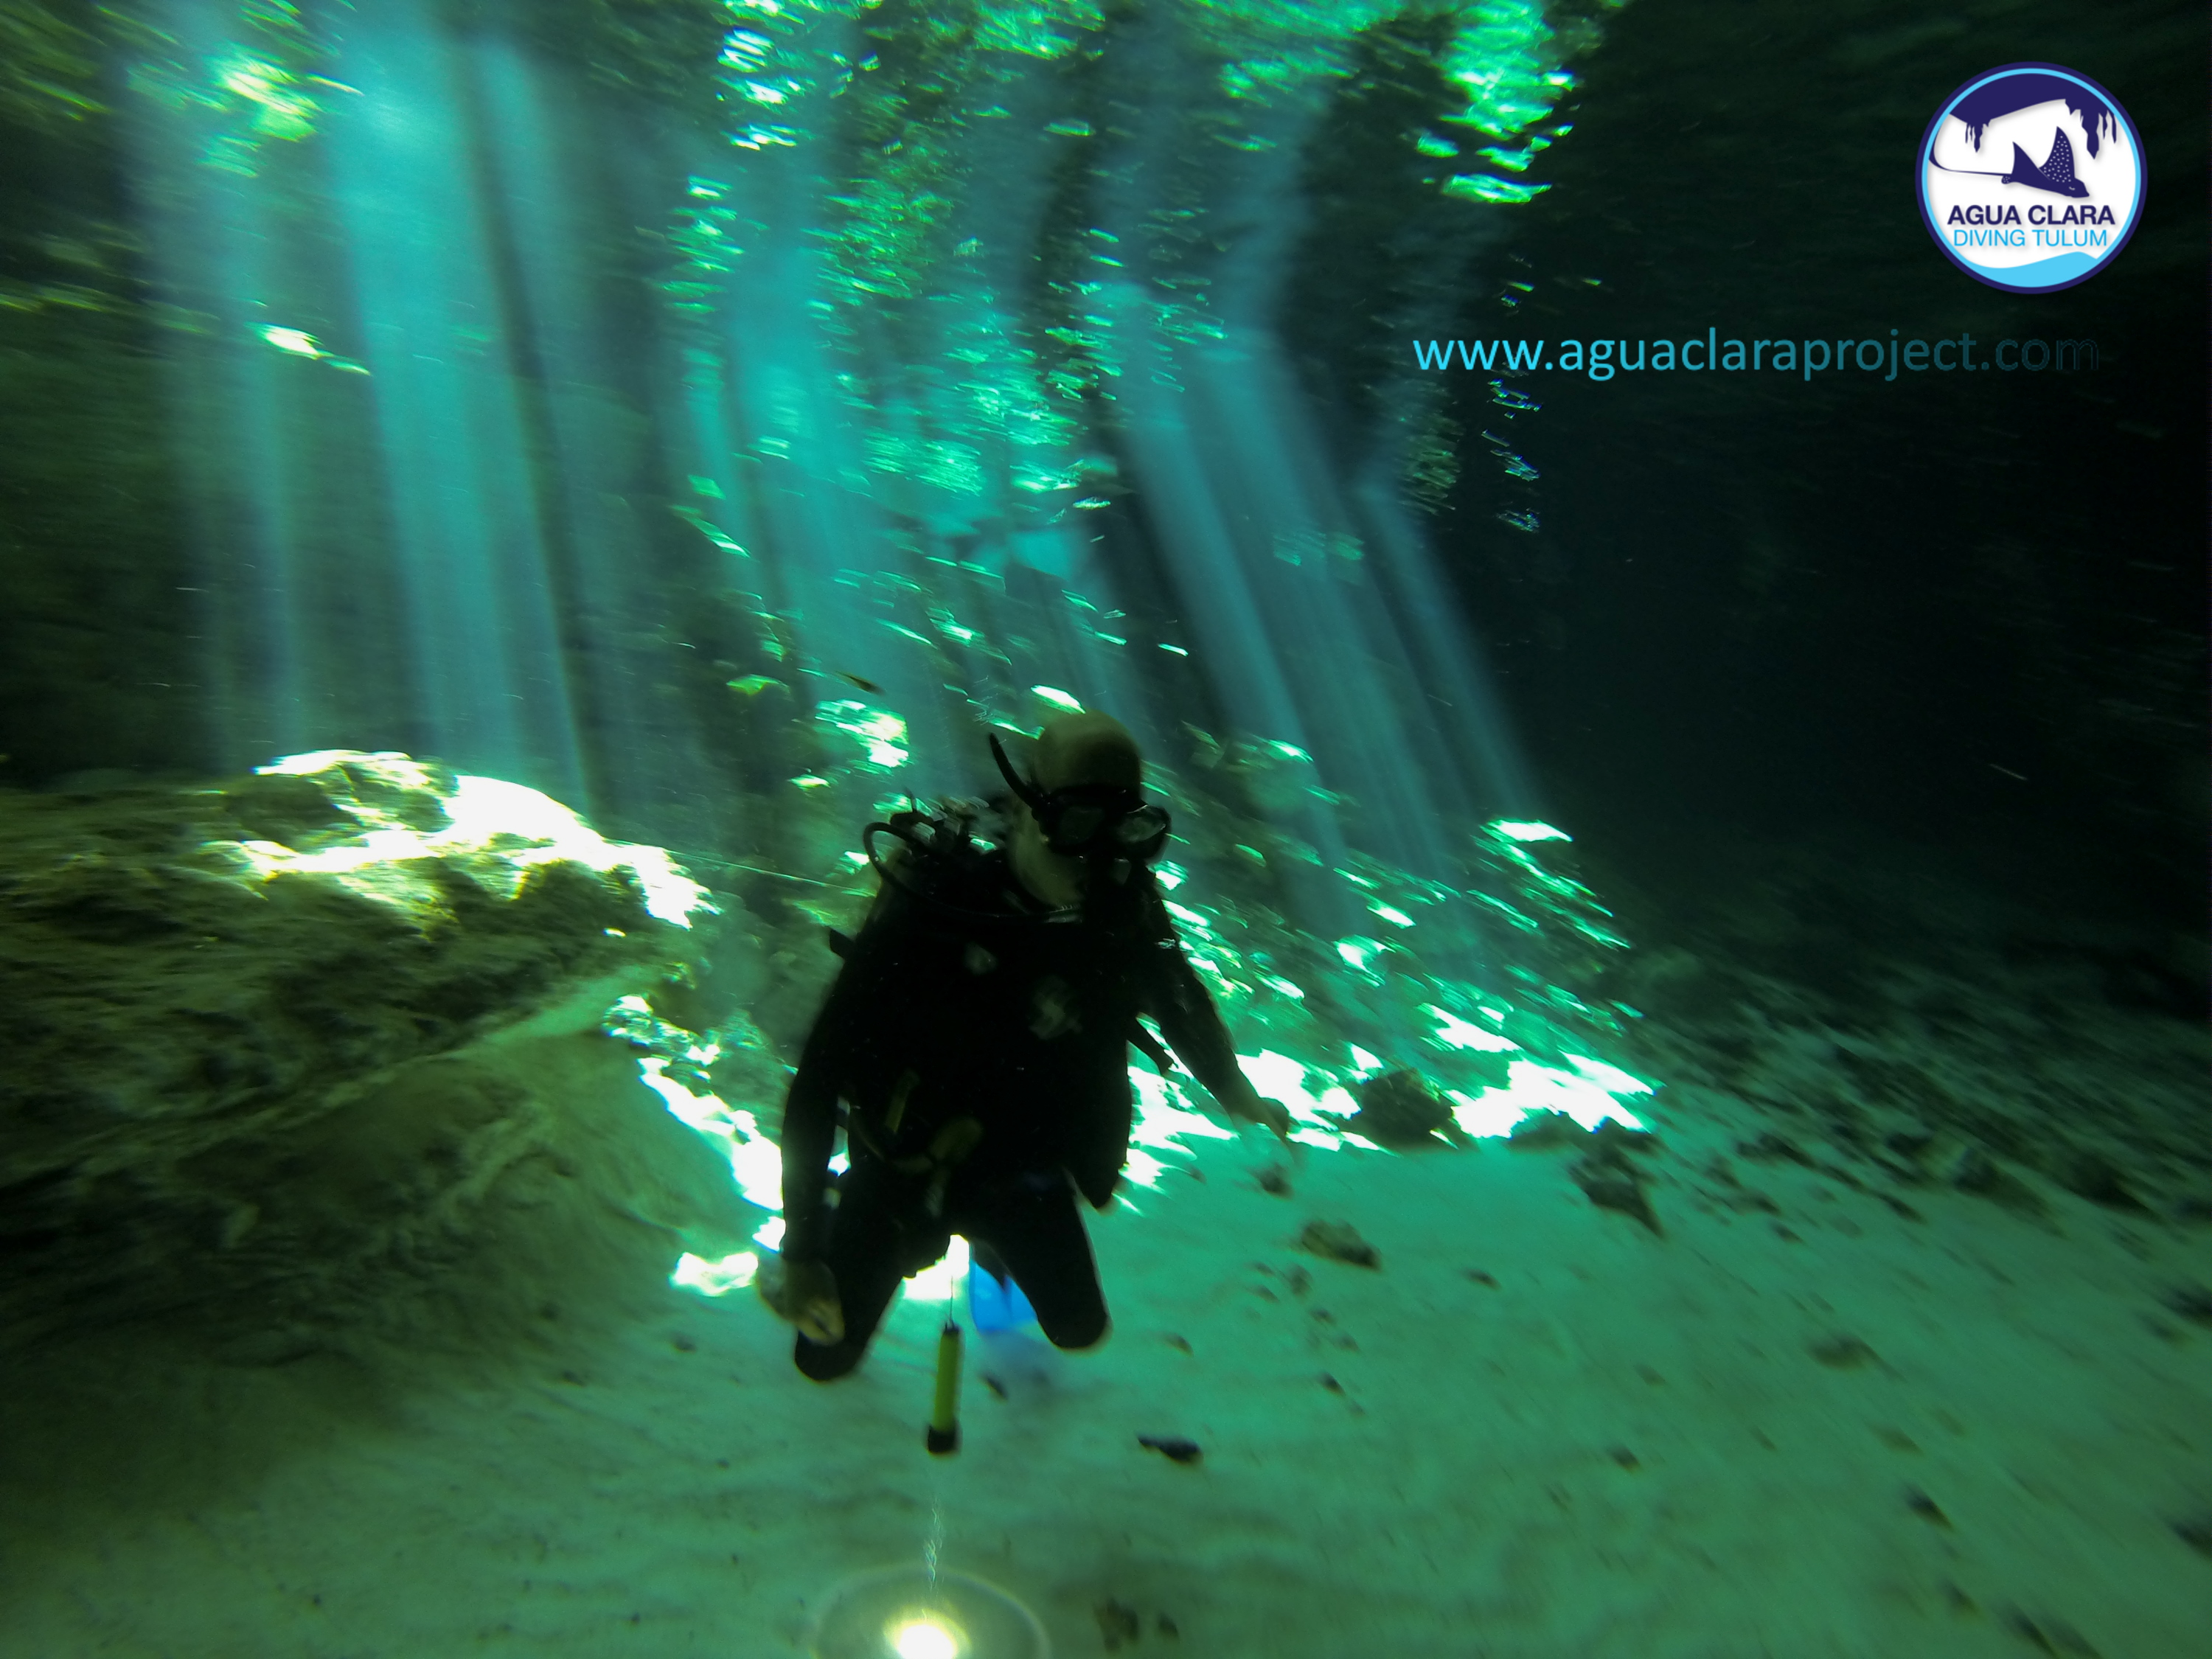 cenote diving with agua clara